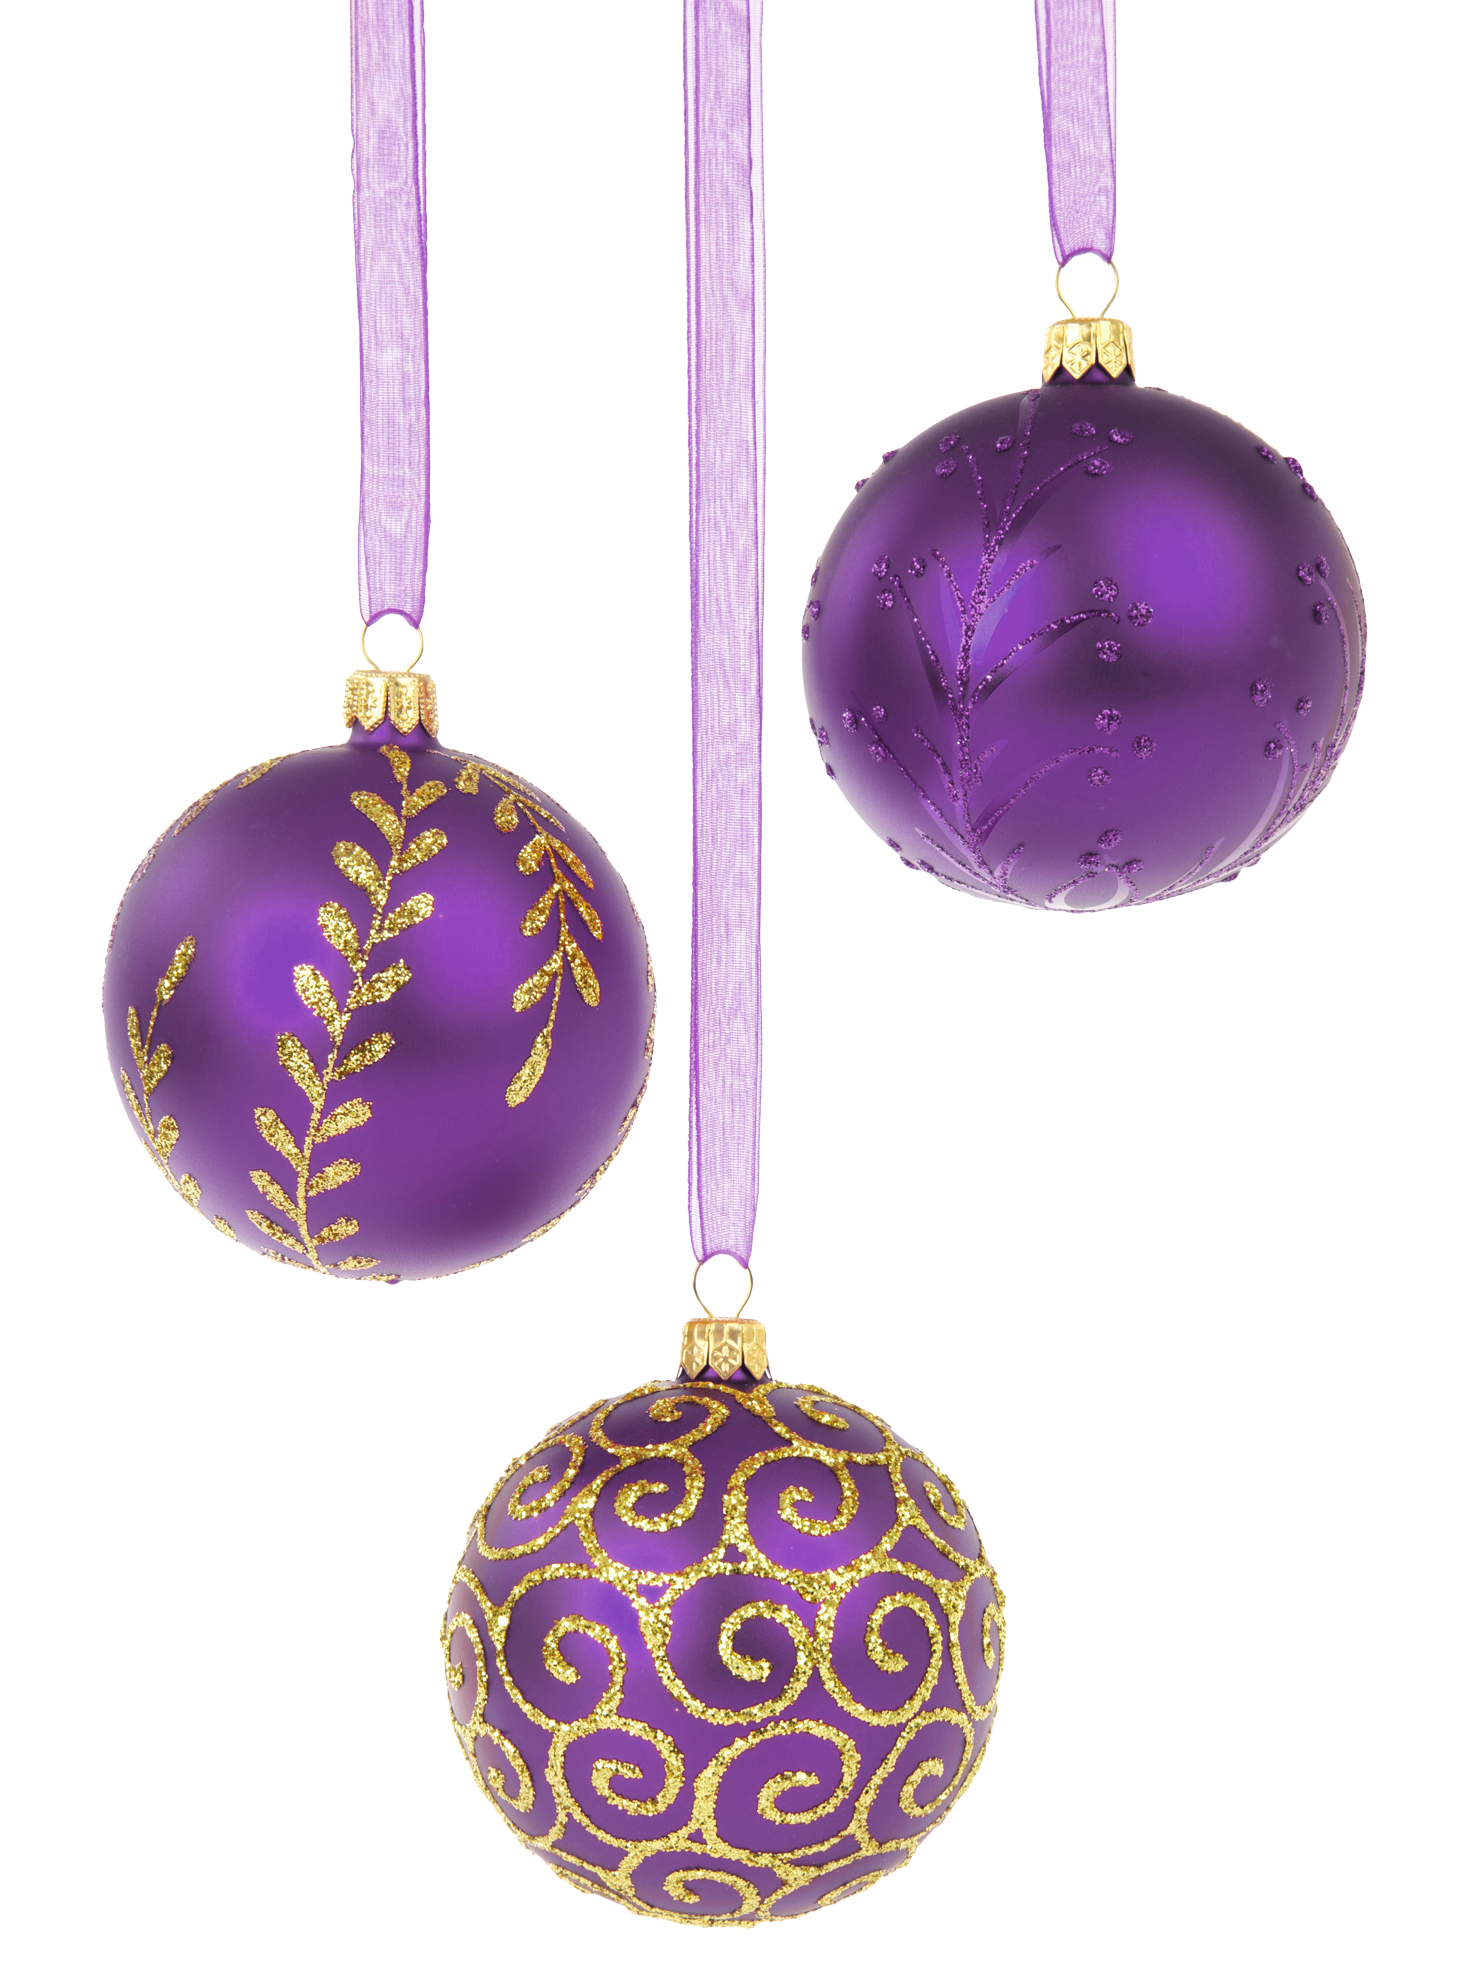 Purple Christmas Baubles PNG Image